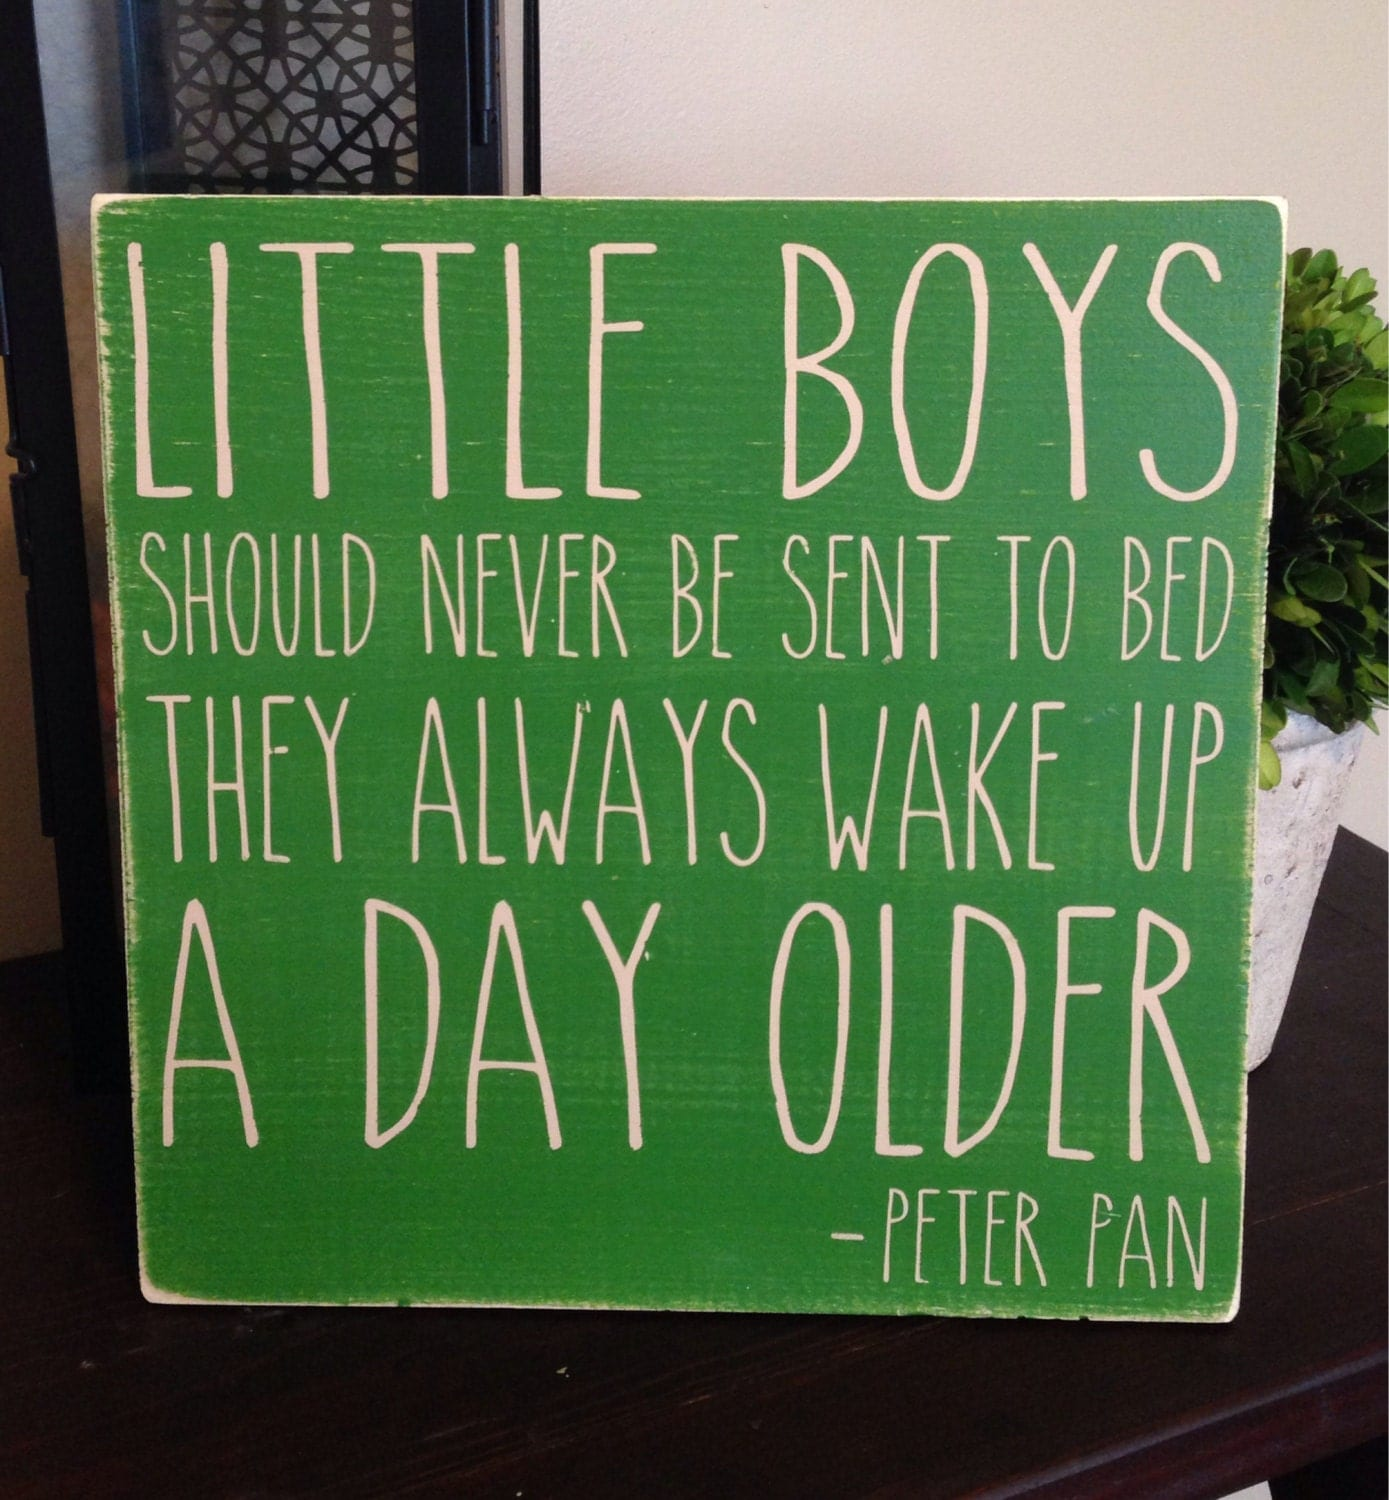 Peter Pan Quotes: Peter Pan Quote Handpainted Wood Sign Little Boys Should